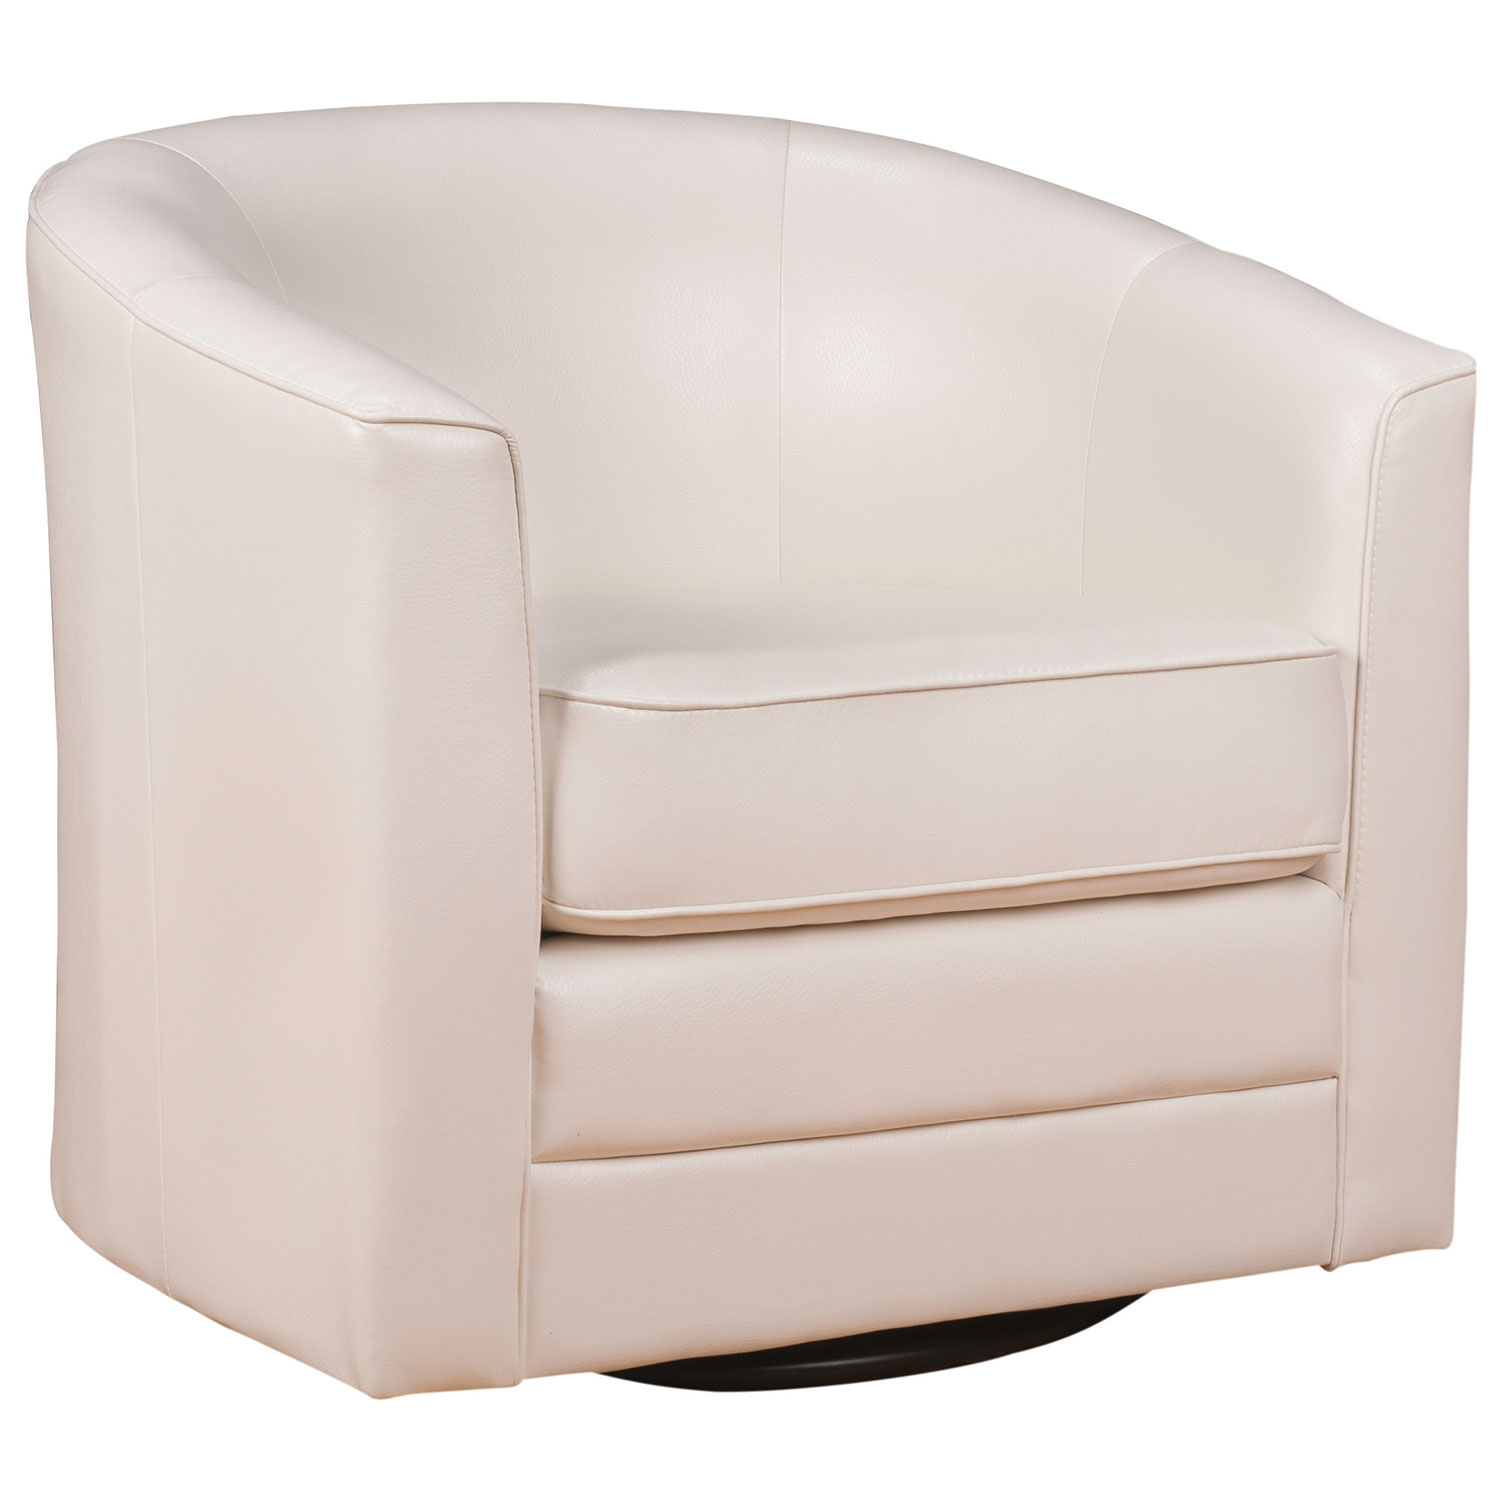 grayson contemporary accent chair  white  accent chairs  best  - grayson contemporary accent chair  white  accent chairs  best buy canada